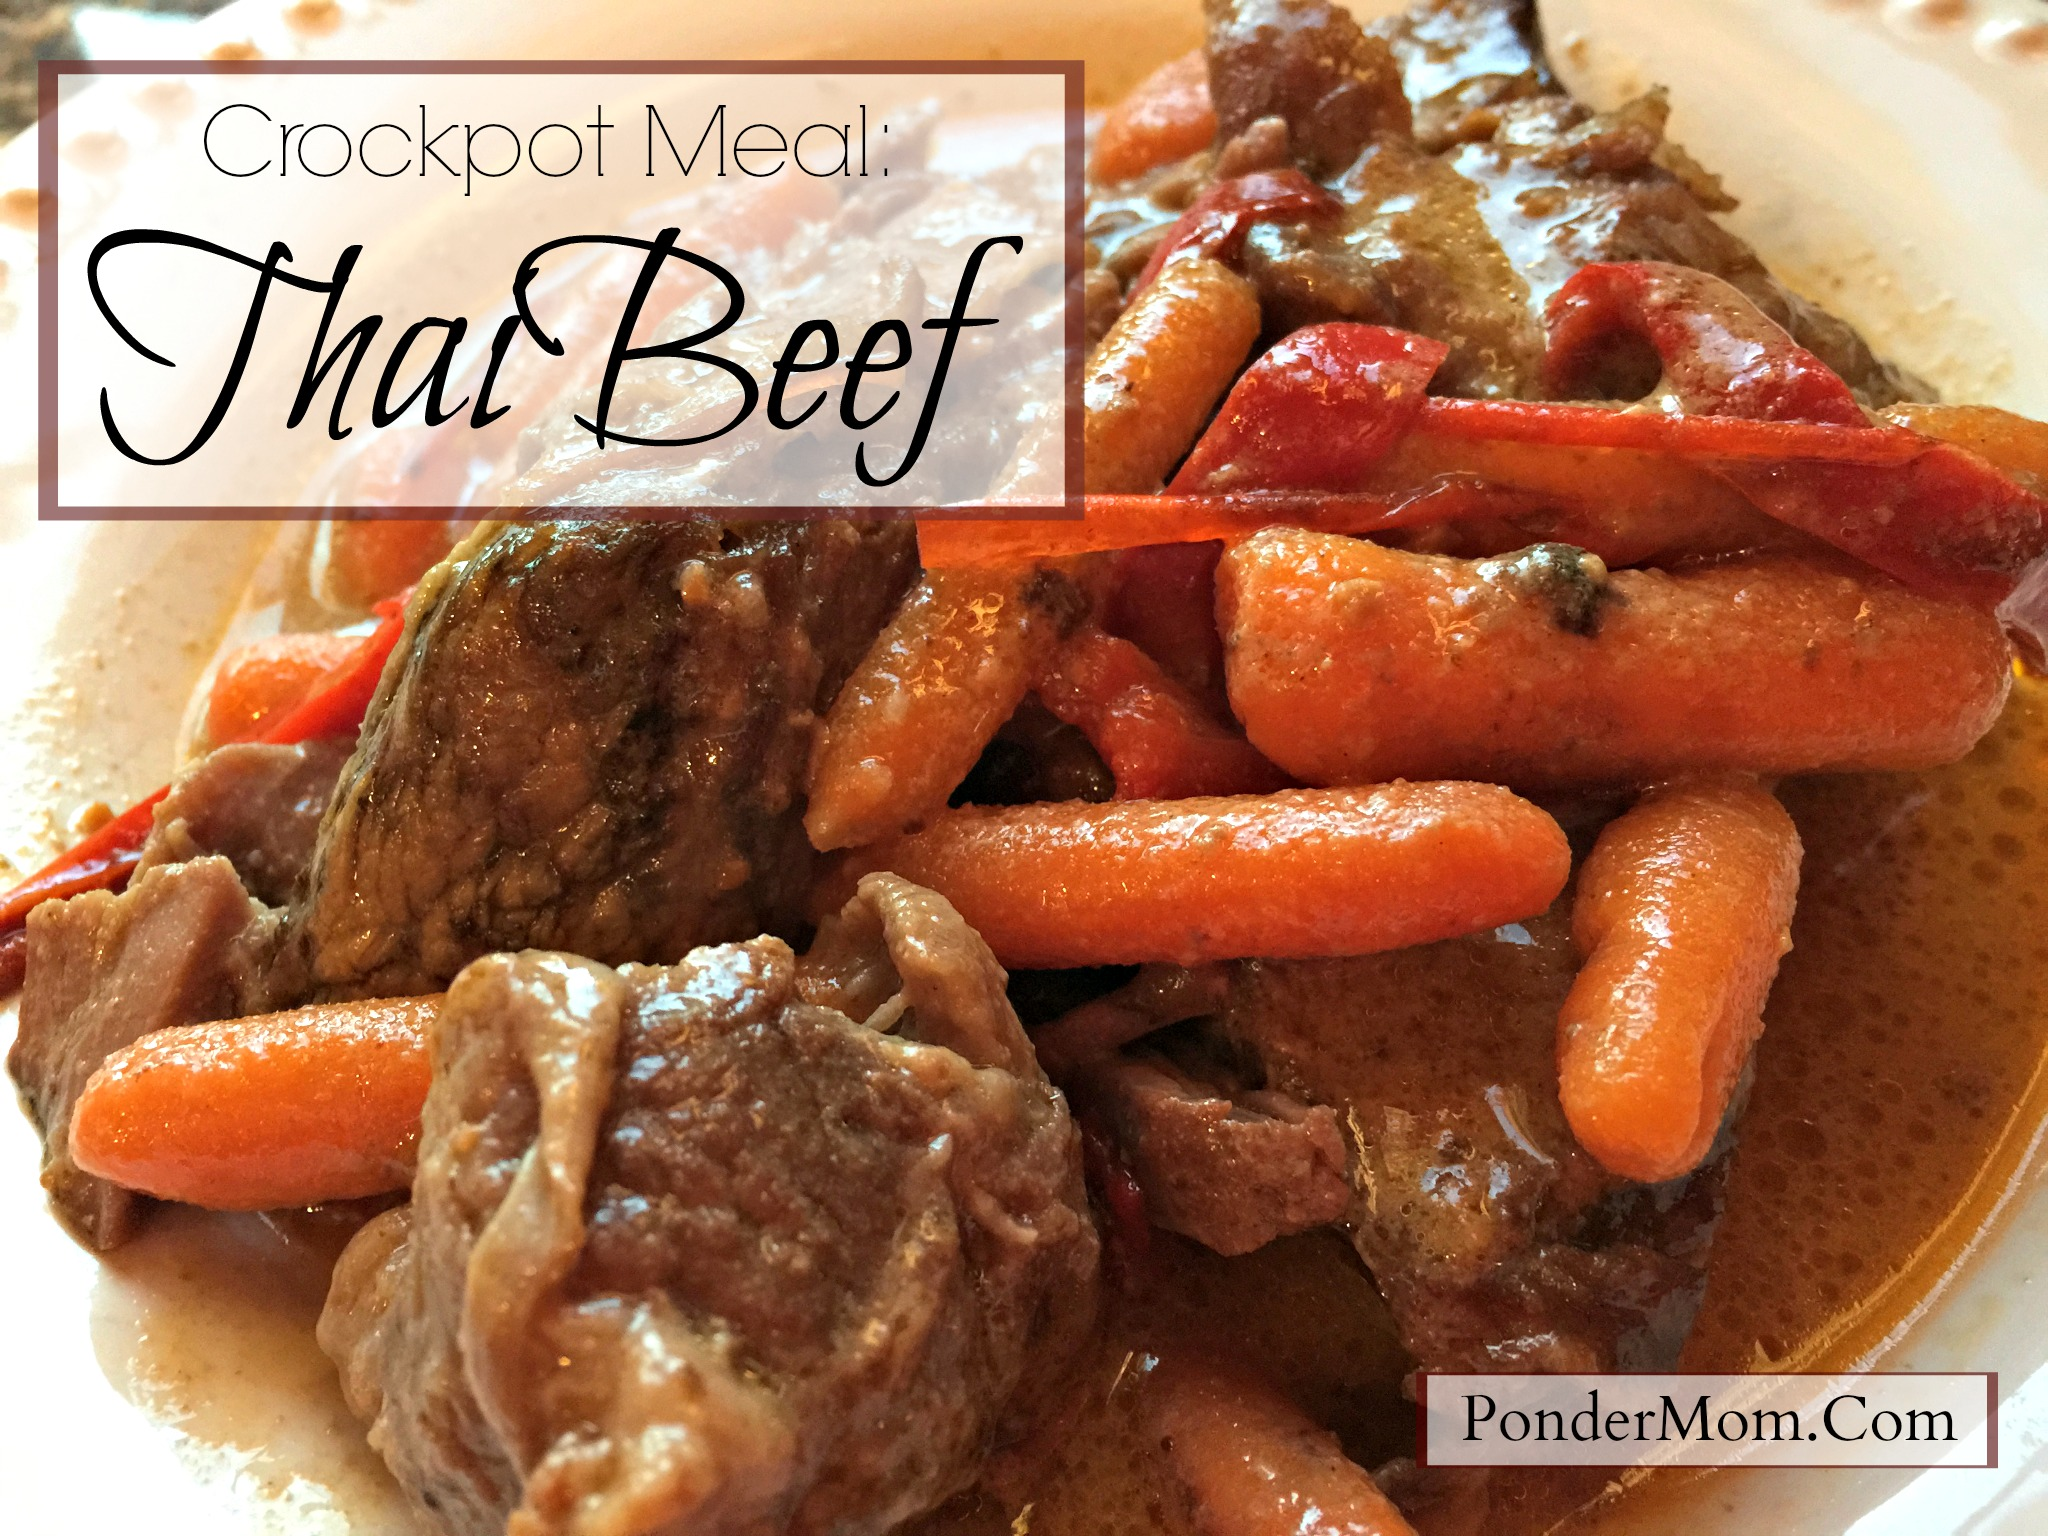 Celebrating Crock-tober: 10-Minute-Prep Thai Beef